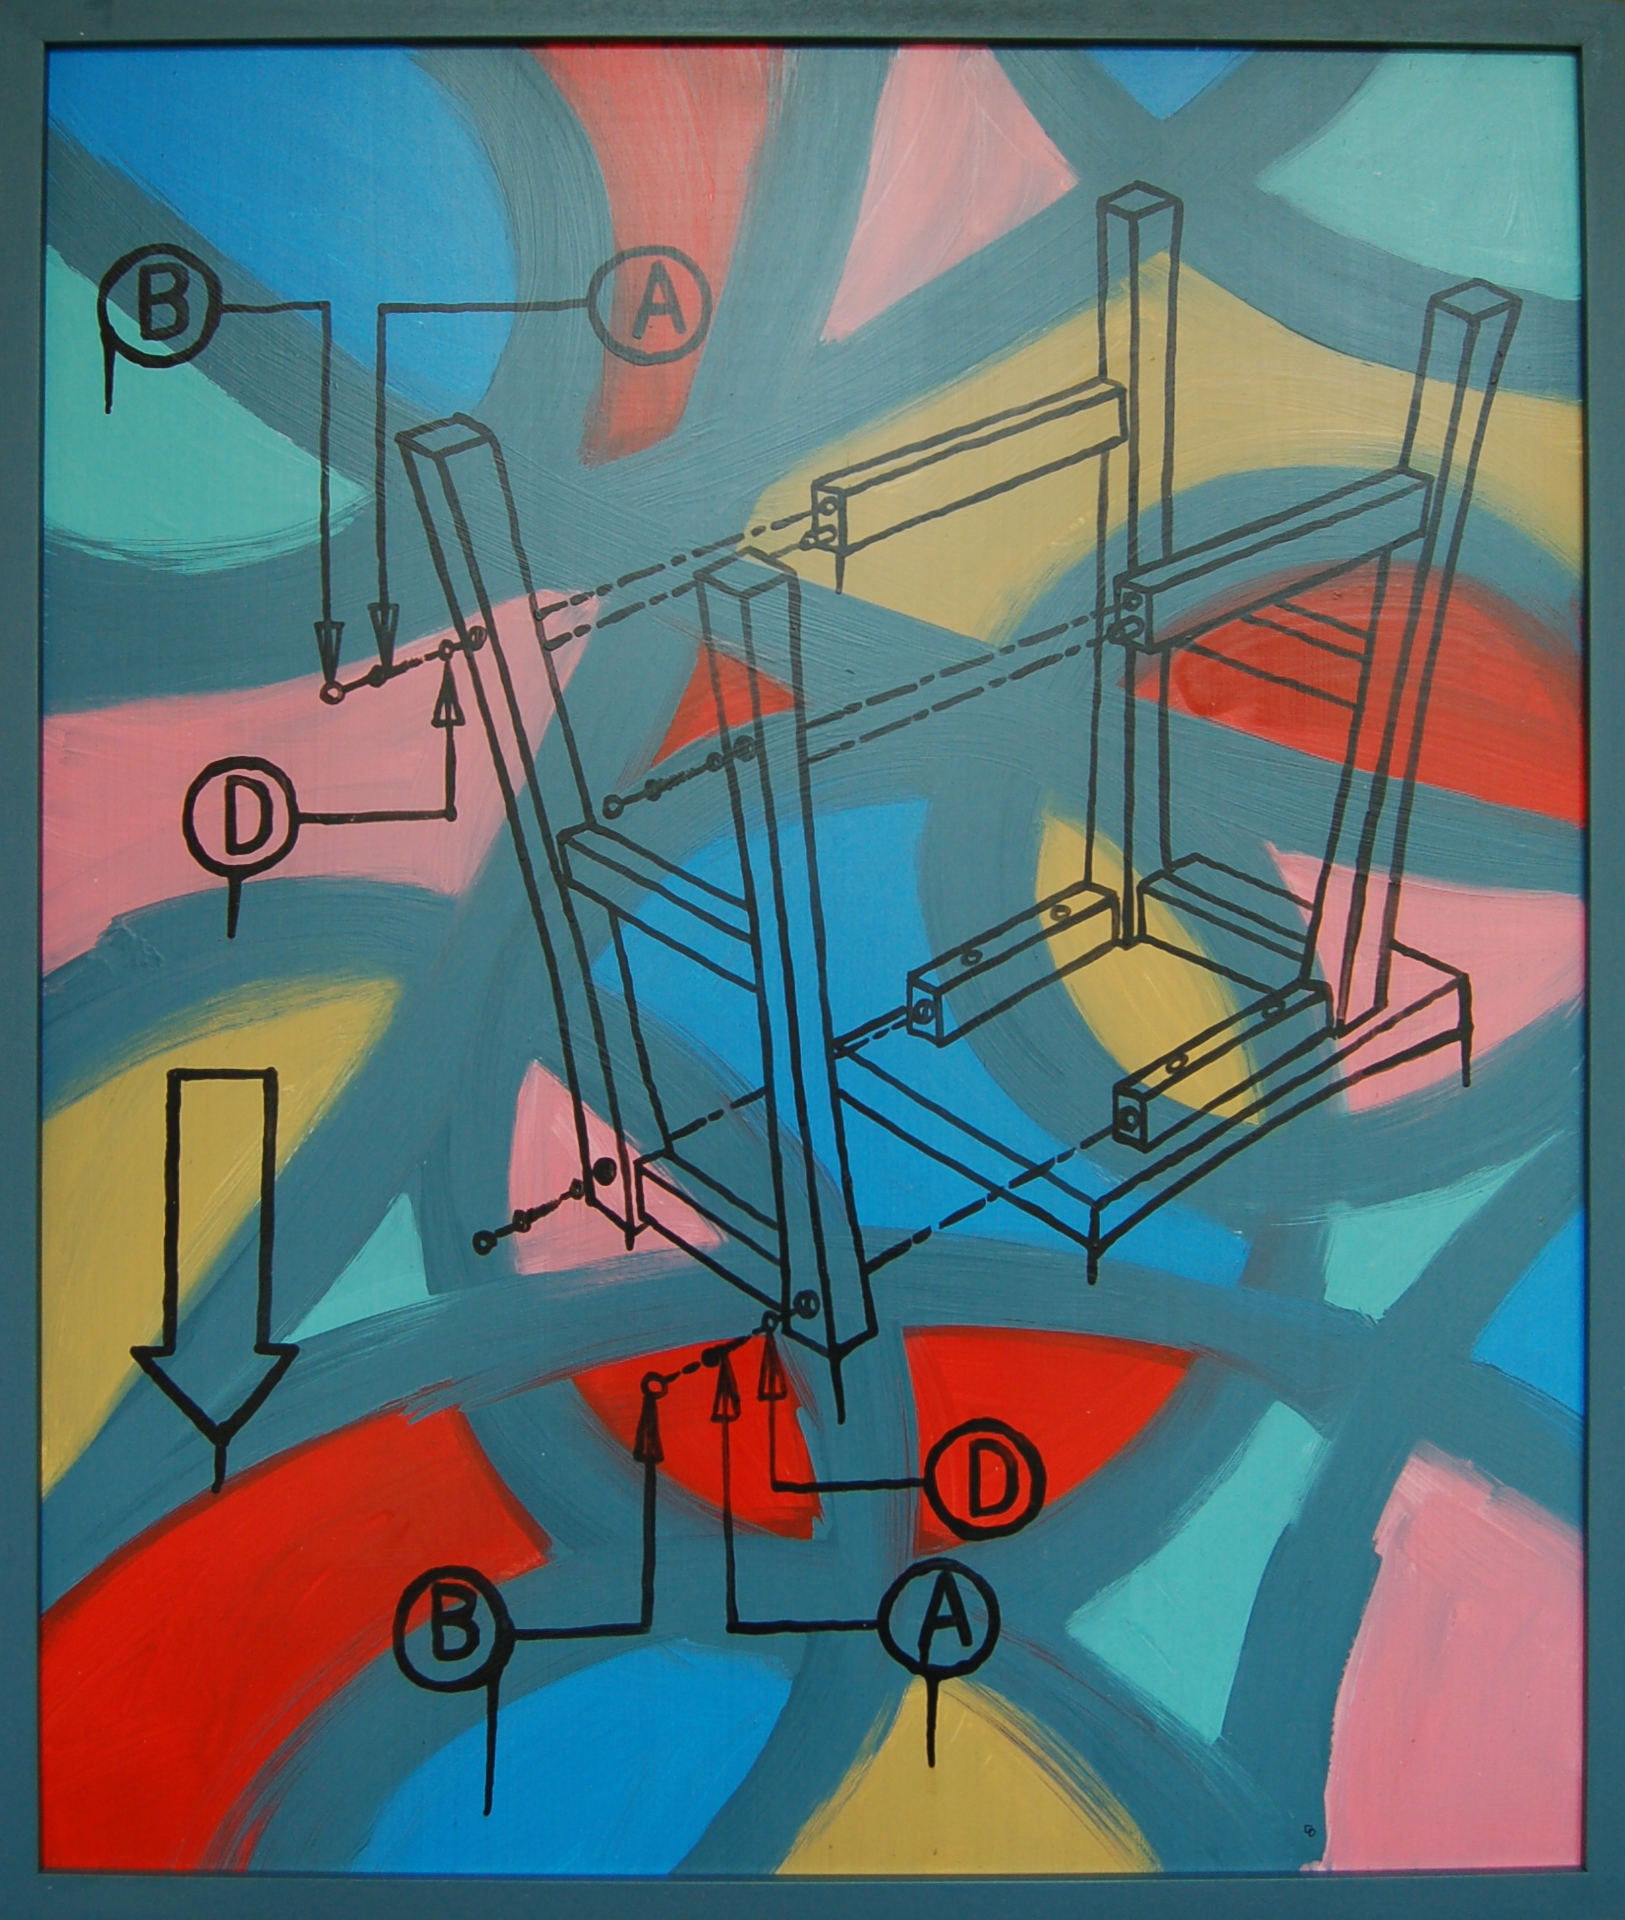 """Abstracted Instructions 2, Latex and Acrylic on Gatorboard, 2013, 25.5"""" x 29.5"""""""